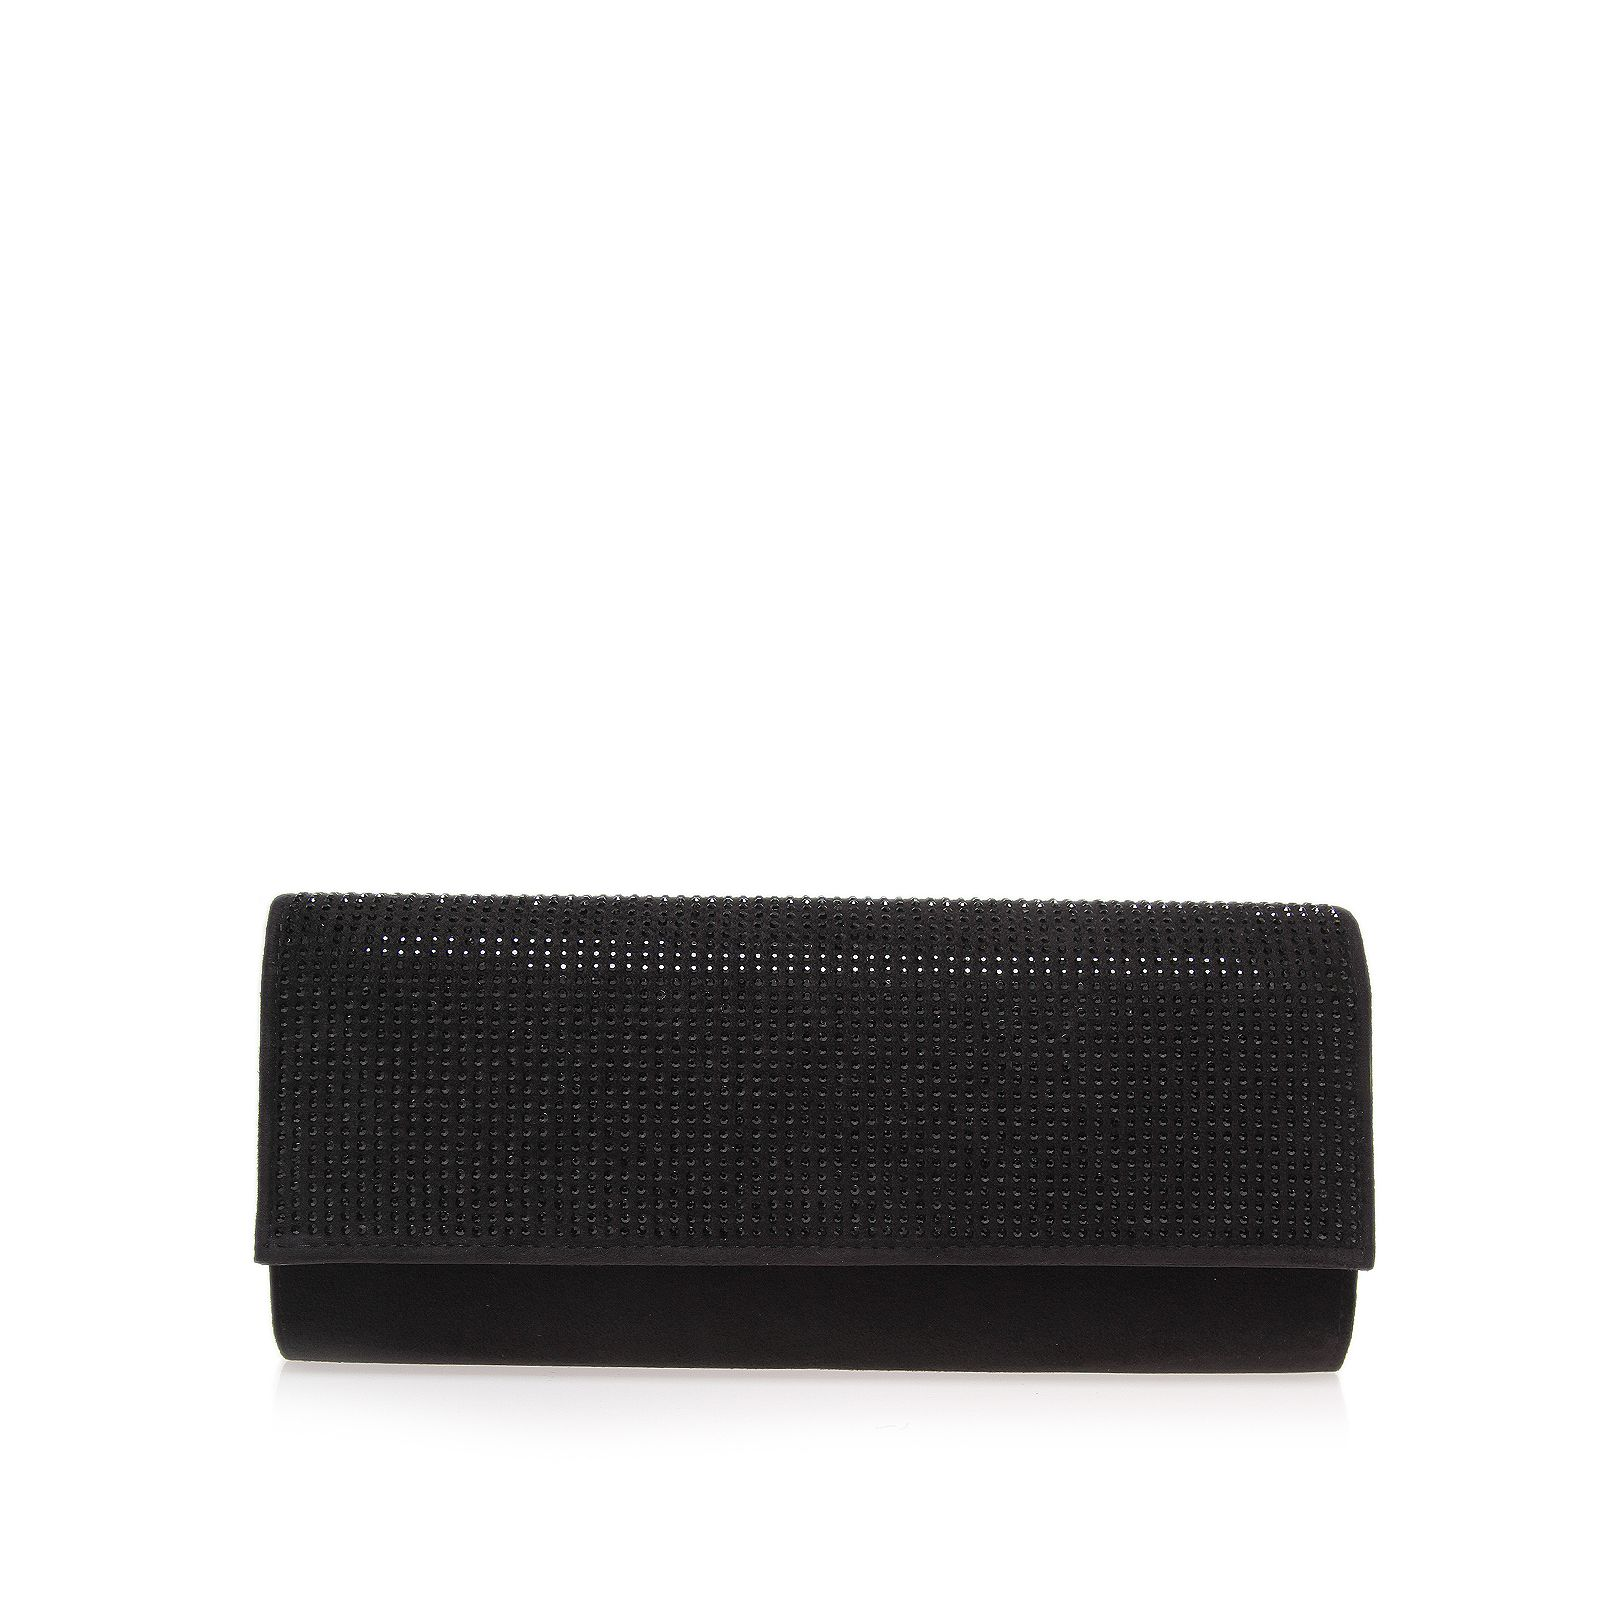 Tatiana Black Clutch Bag